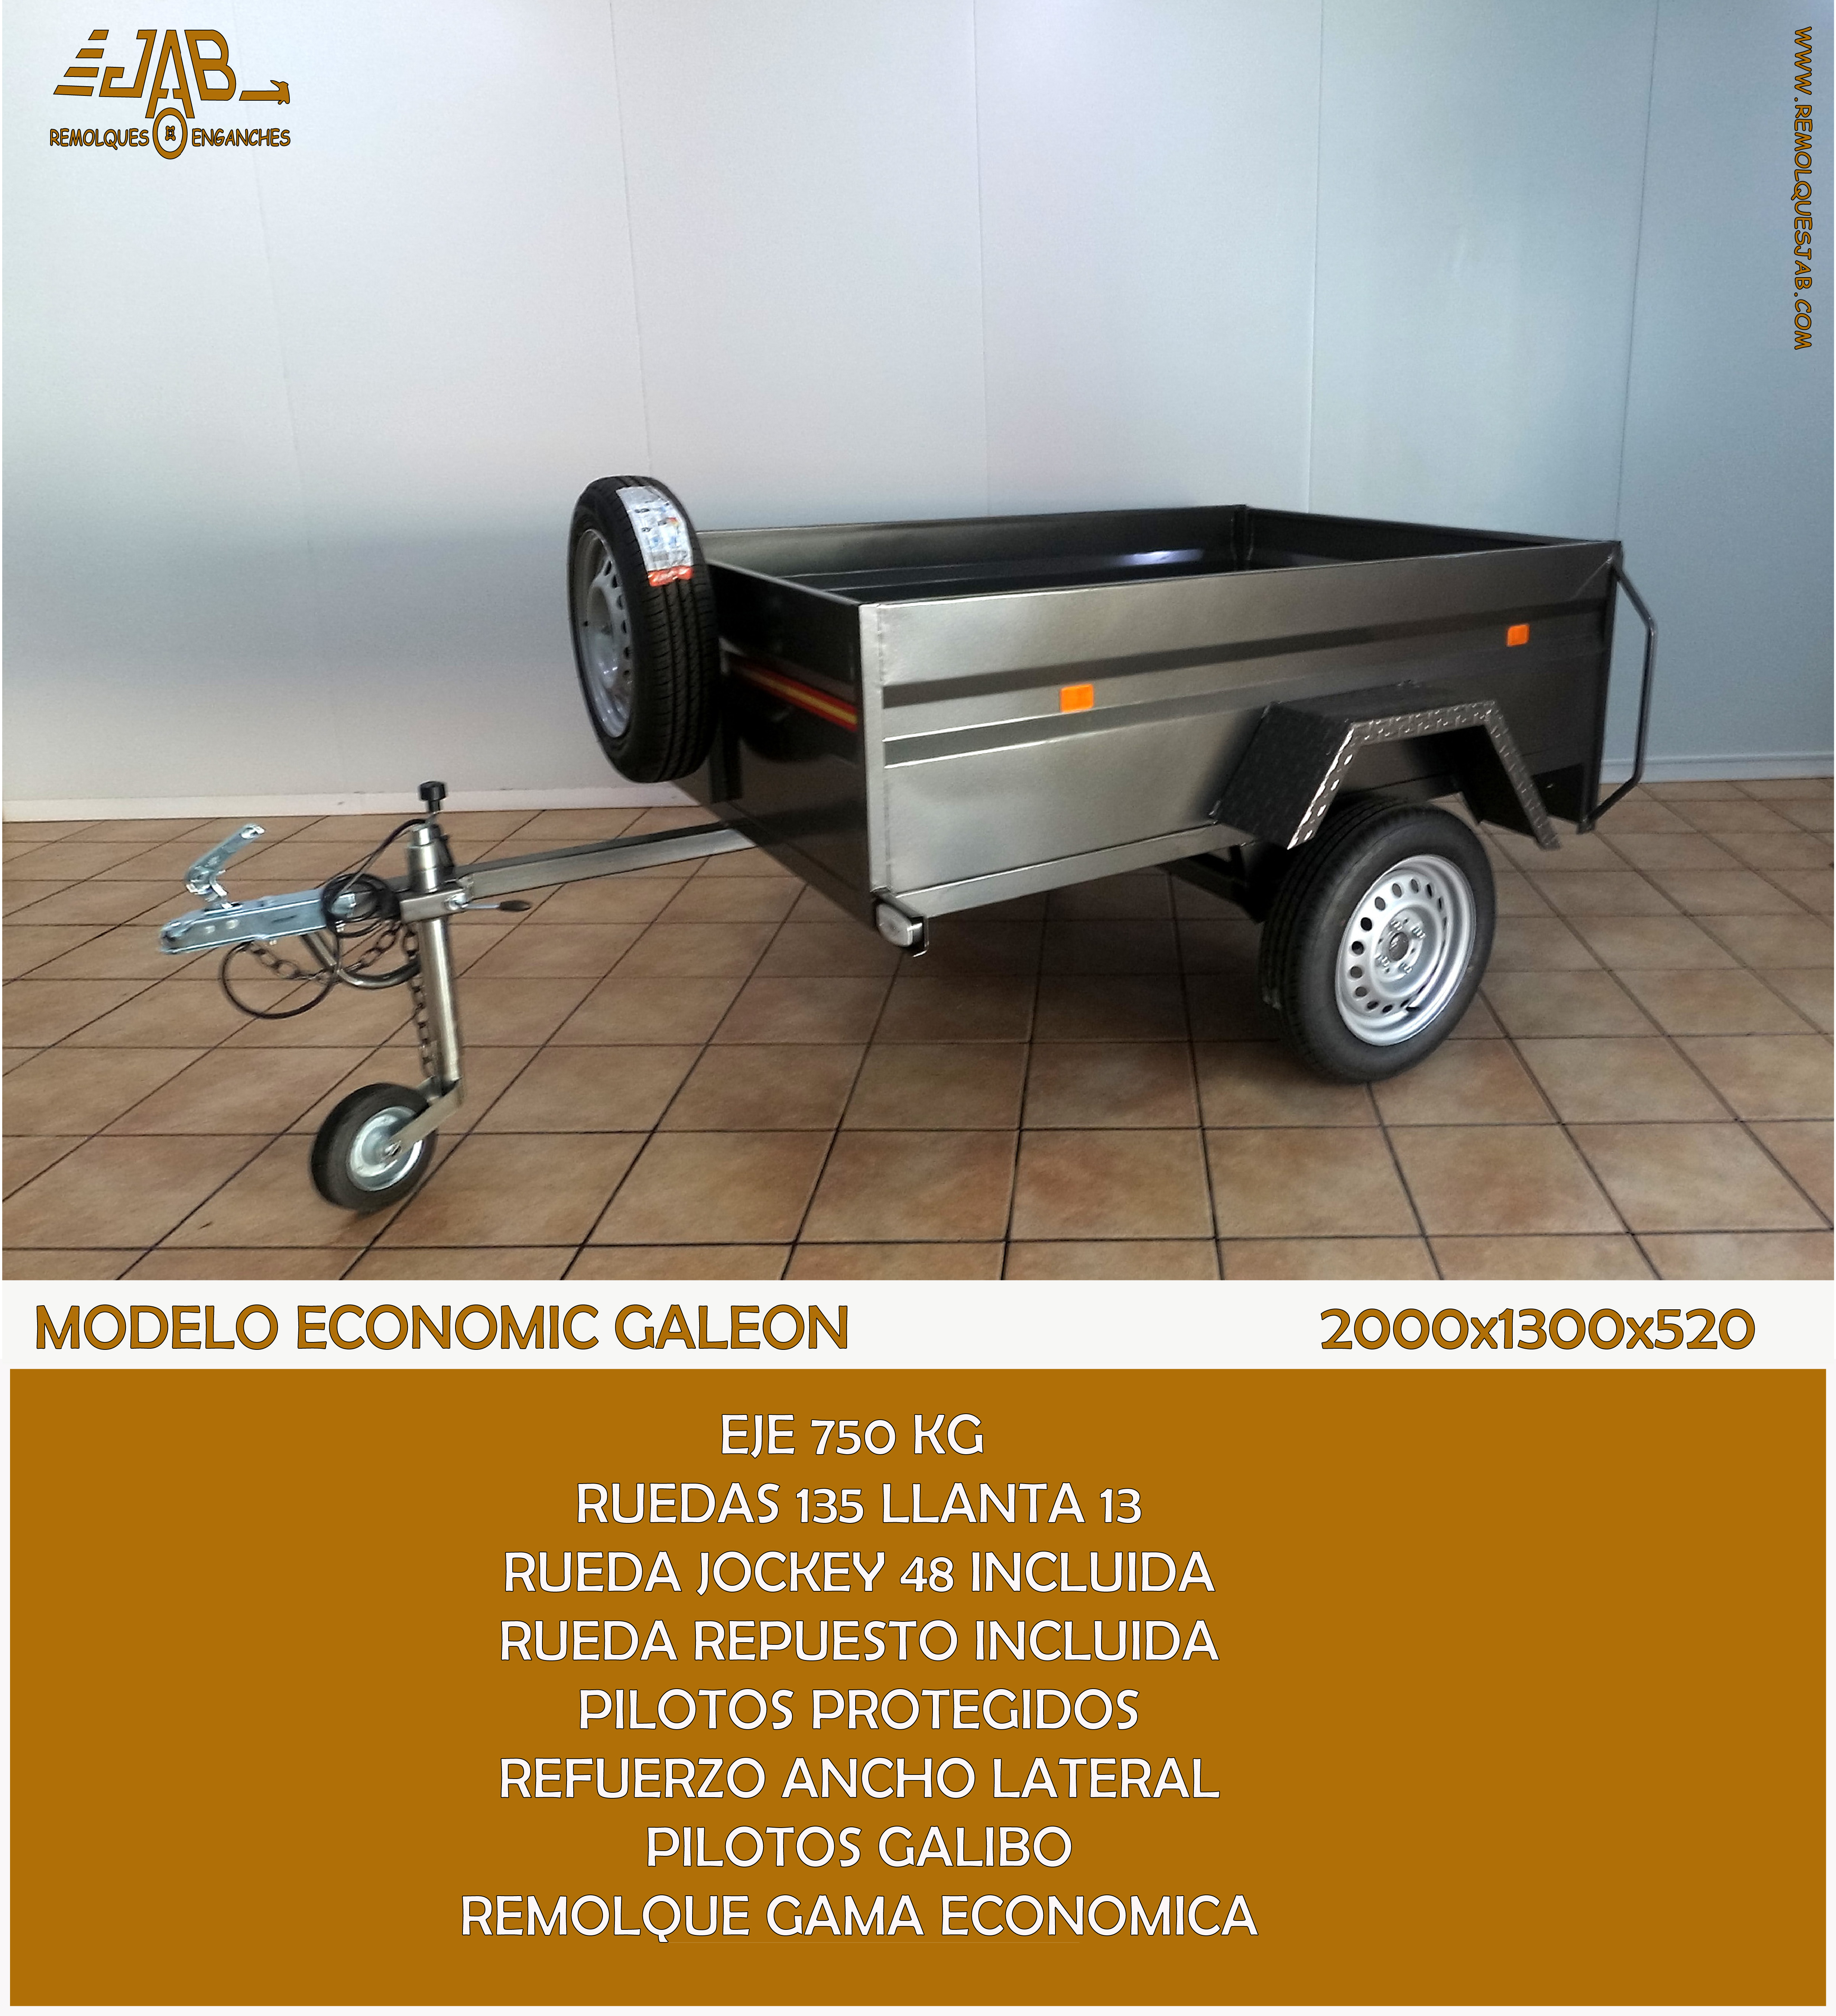 MODELO ECONOMIC GALEON WEB